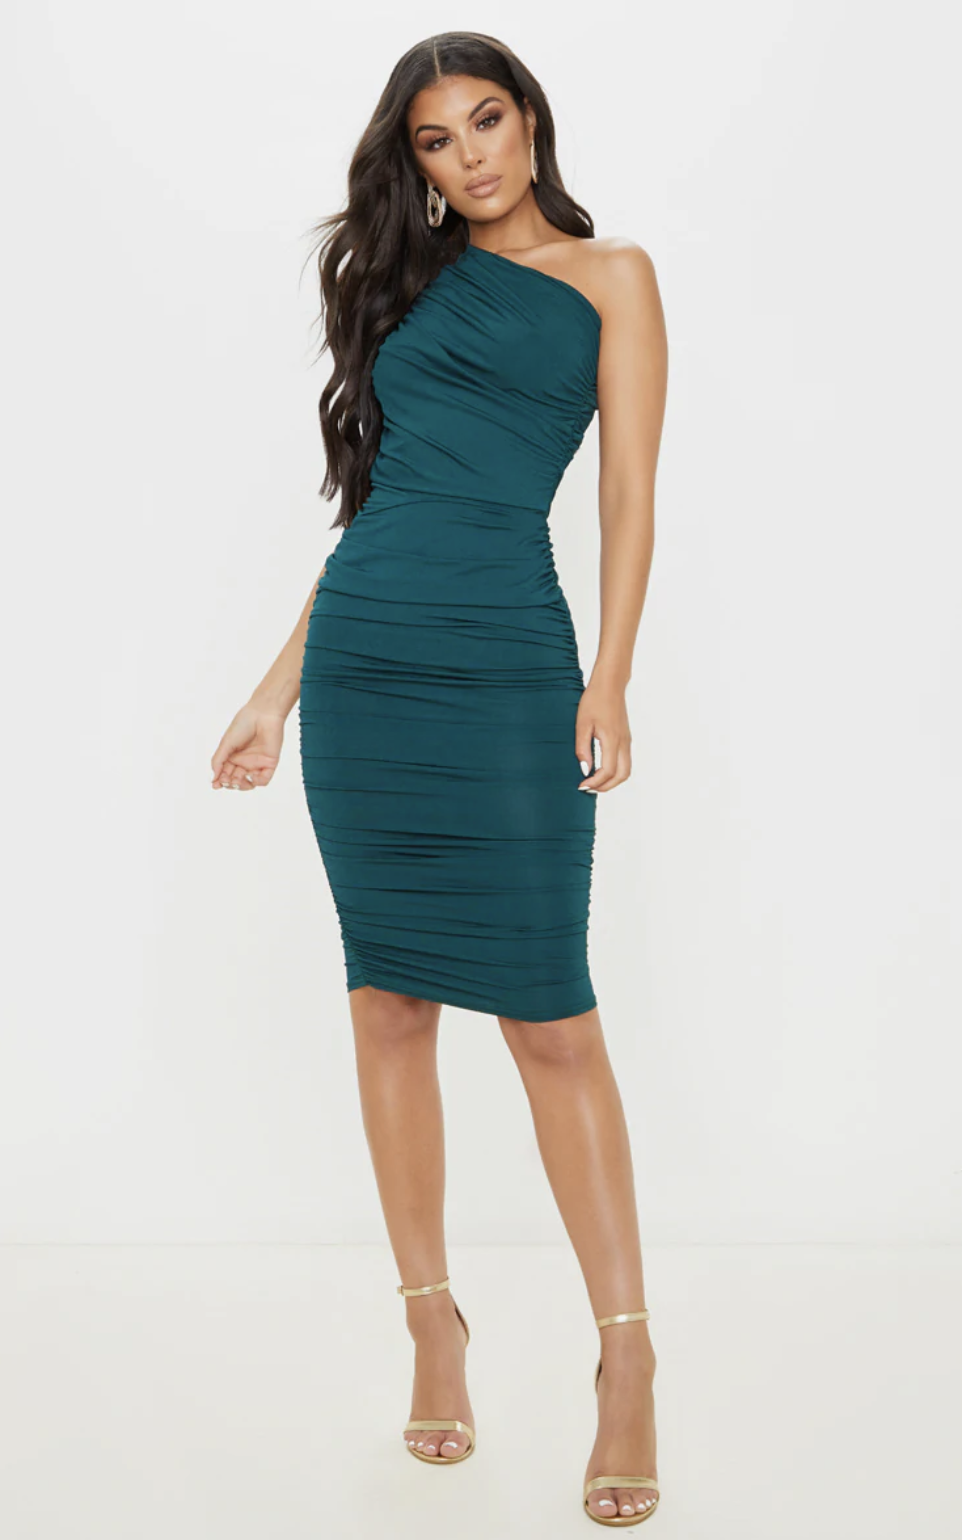 PrettyLittleThing Emerald Green Slinky Ruched One Shoulder Longline Midi Dress